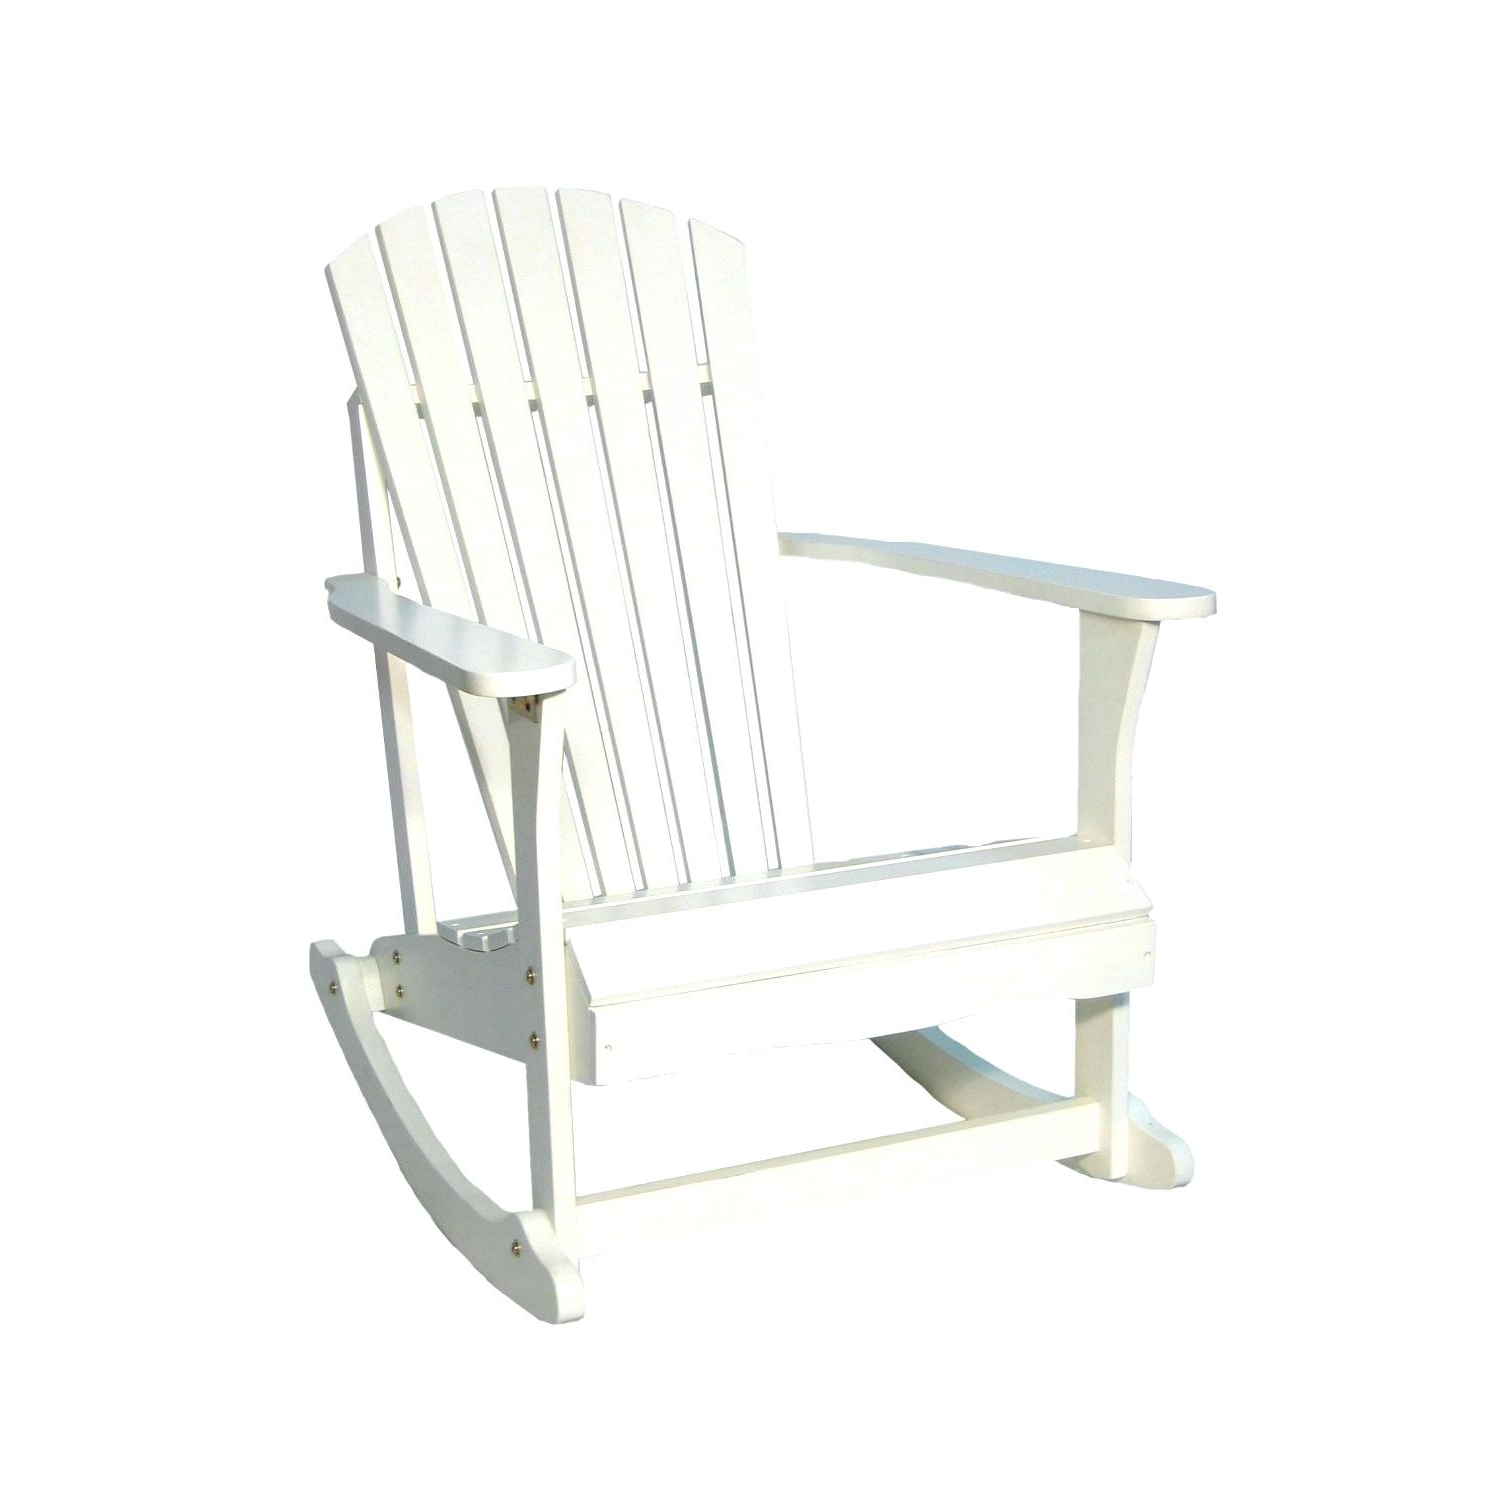 Chairs Rustic Outdoor Rocking Log Wooden White Chair Tractor Supply For Most Recent Zen Rocking Chairs (View 10 of 15)